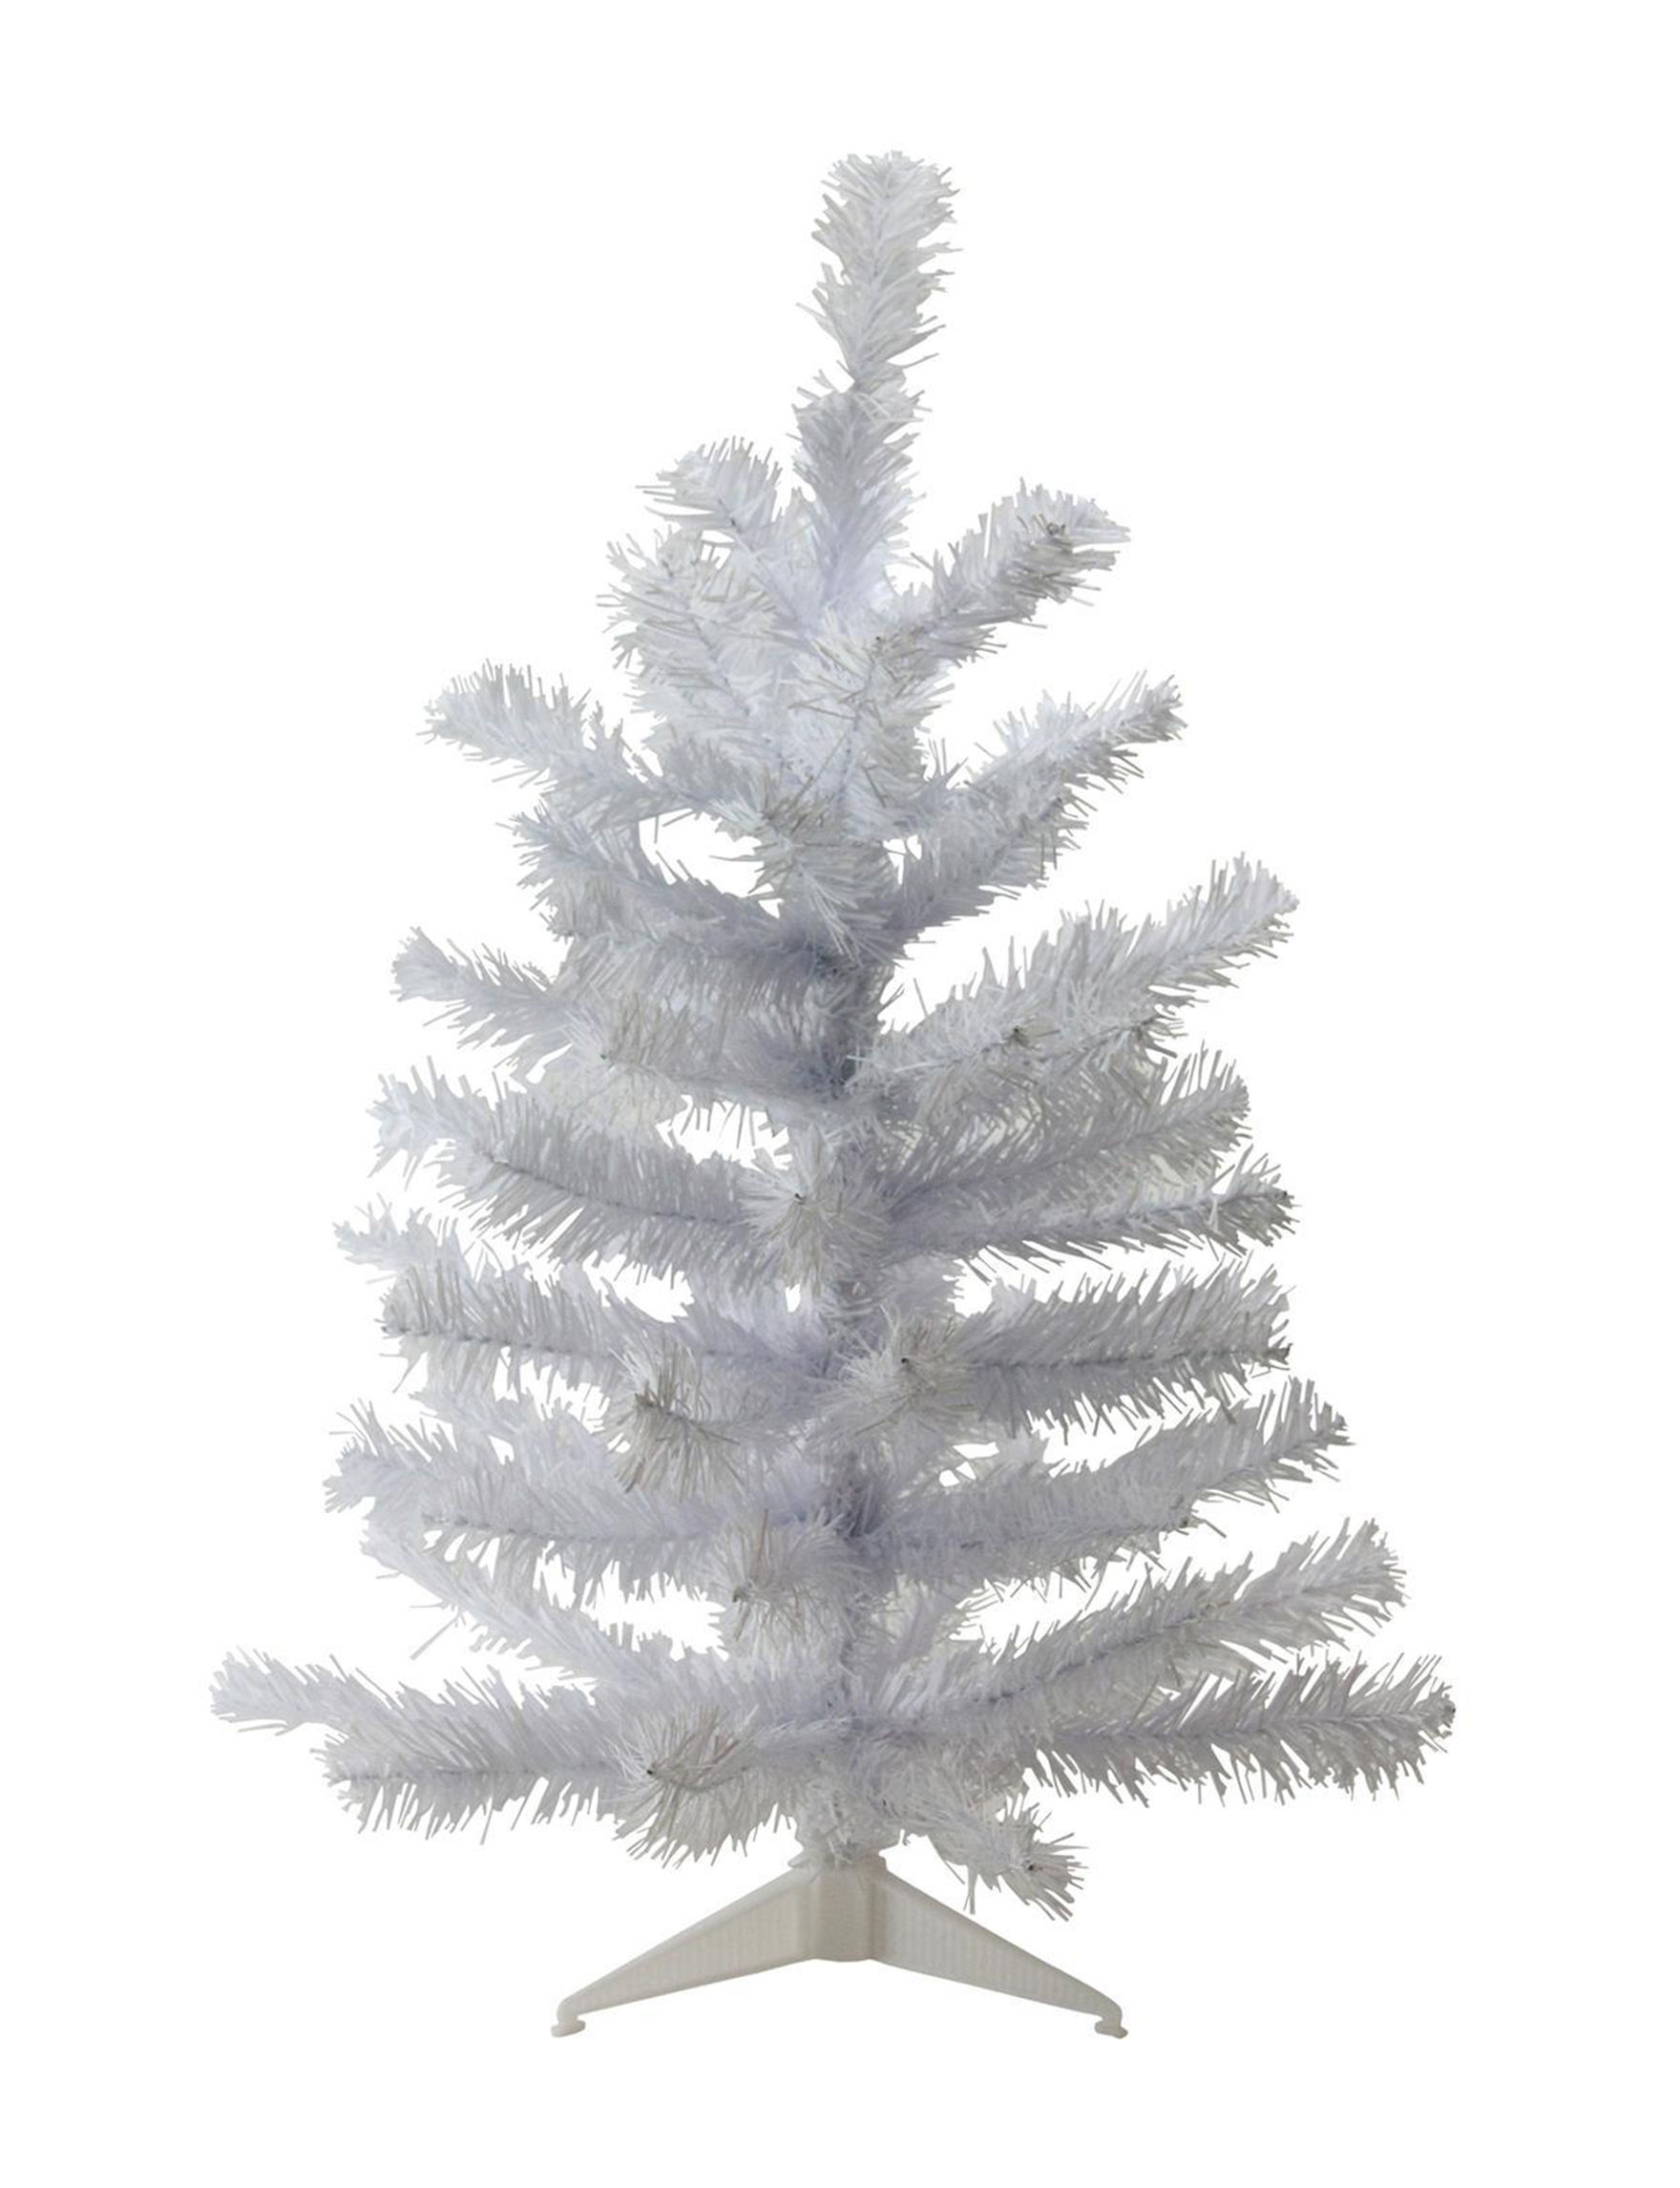 Northlight White Christmas Trees Decorative Objects Holiday Decor Home Accents